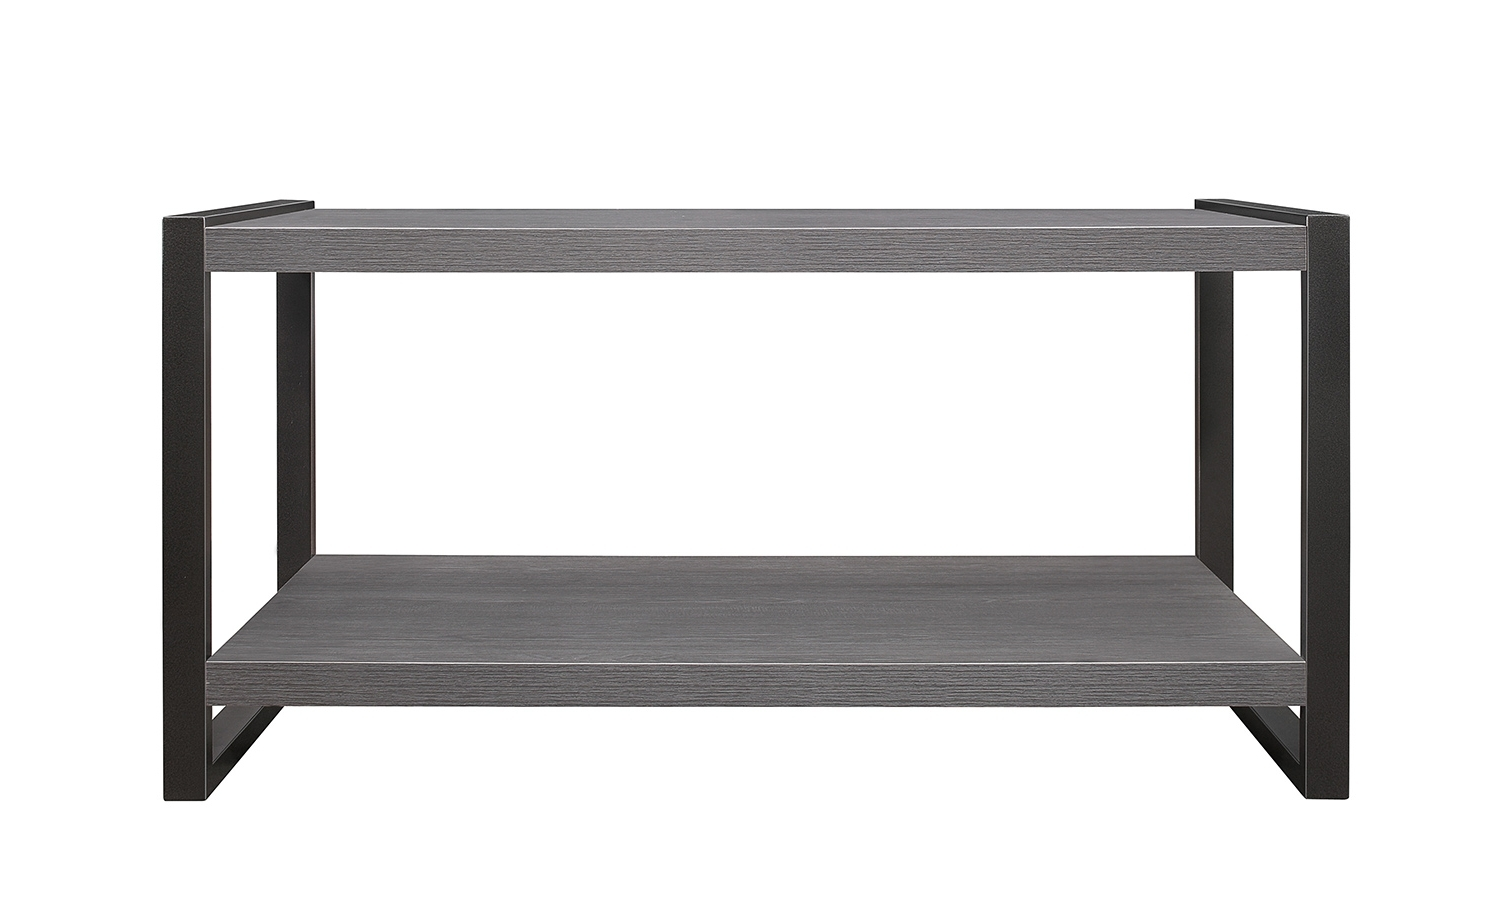 Homelegance Dogue Cocktail/coffee Table – Gunmetal Gray 3606 30 Inside Favorite Gunmetal Coffee Tables (View 9 of 20)